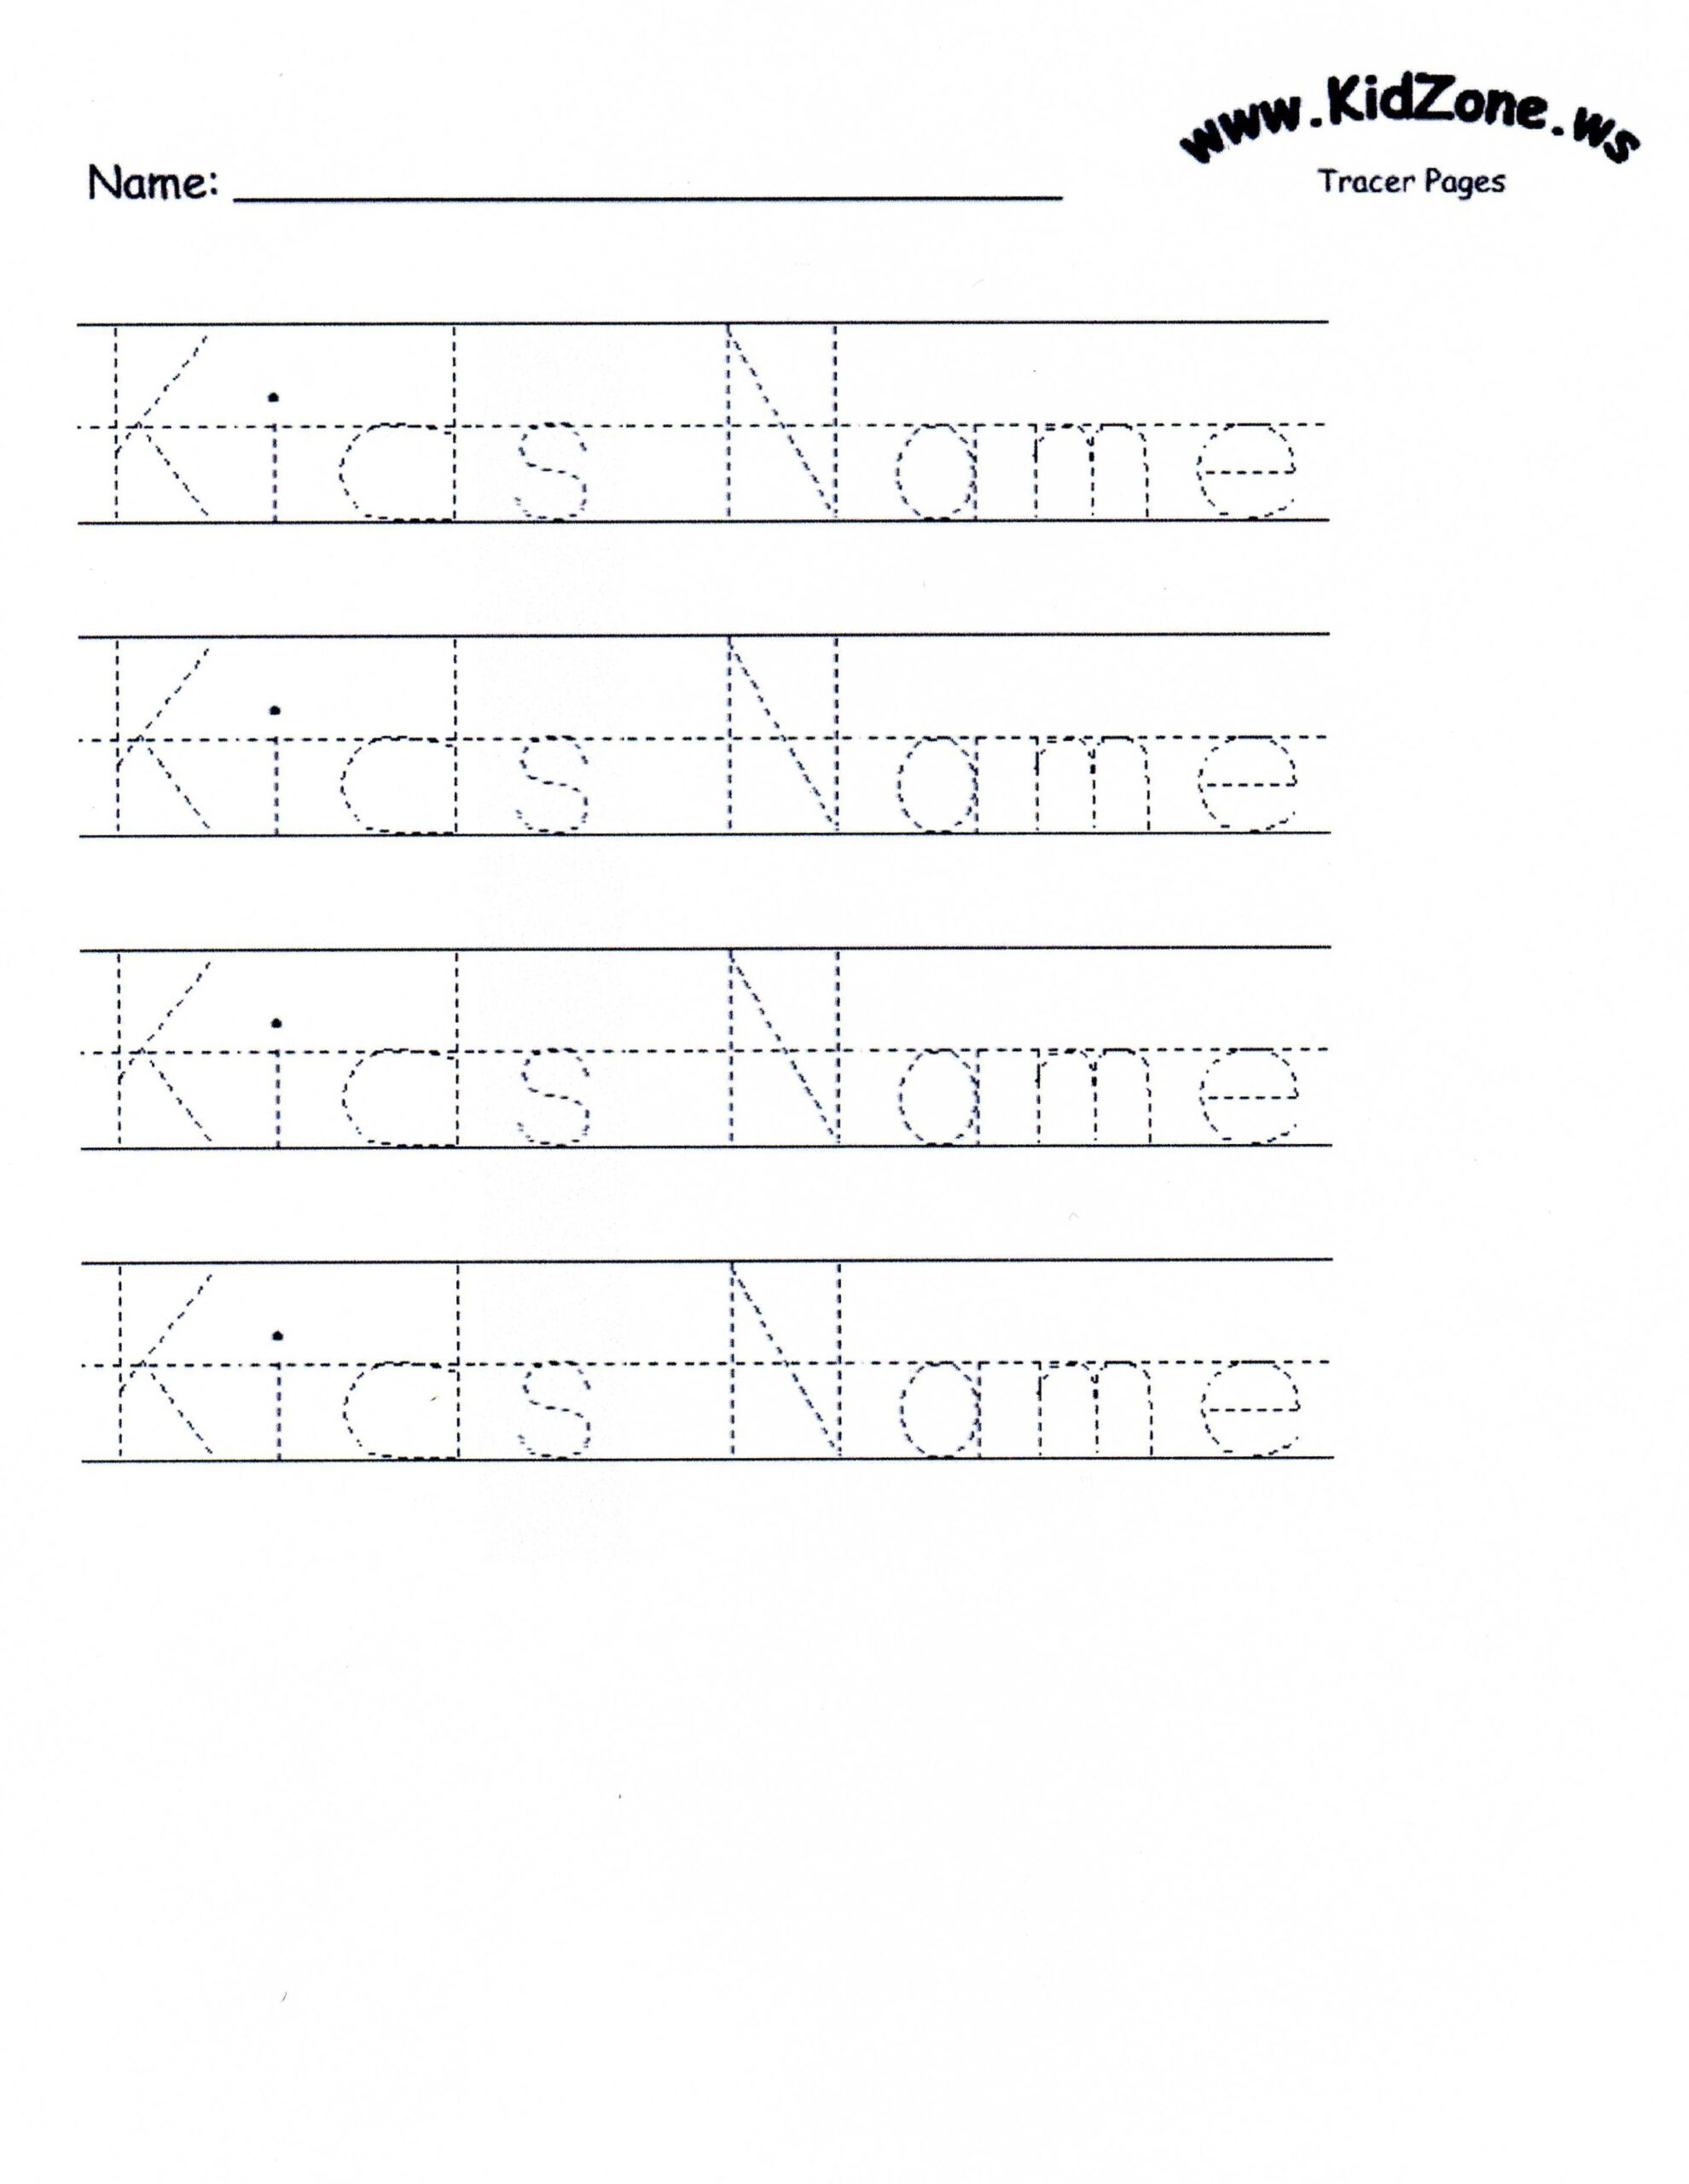 Custom Tracer Pages | Tracing Worksheets Preschool, Name throughout Create A Name Tracing Worksheet